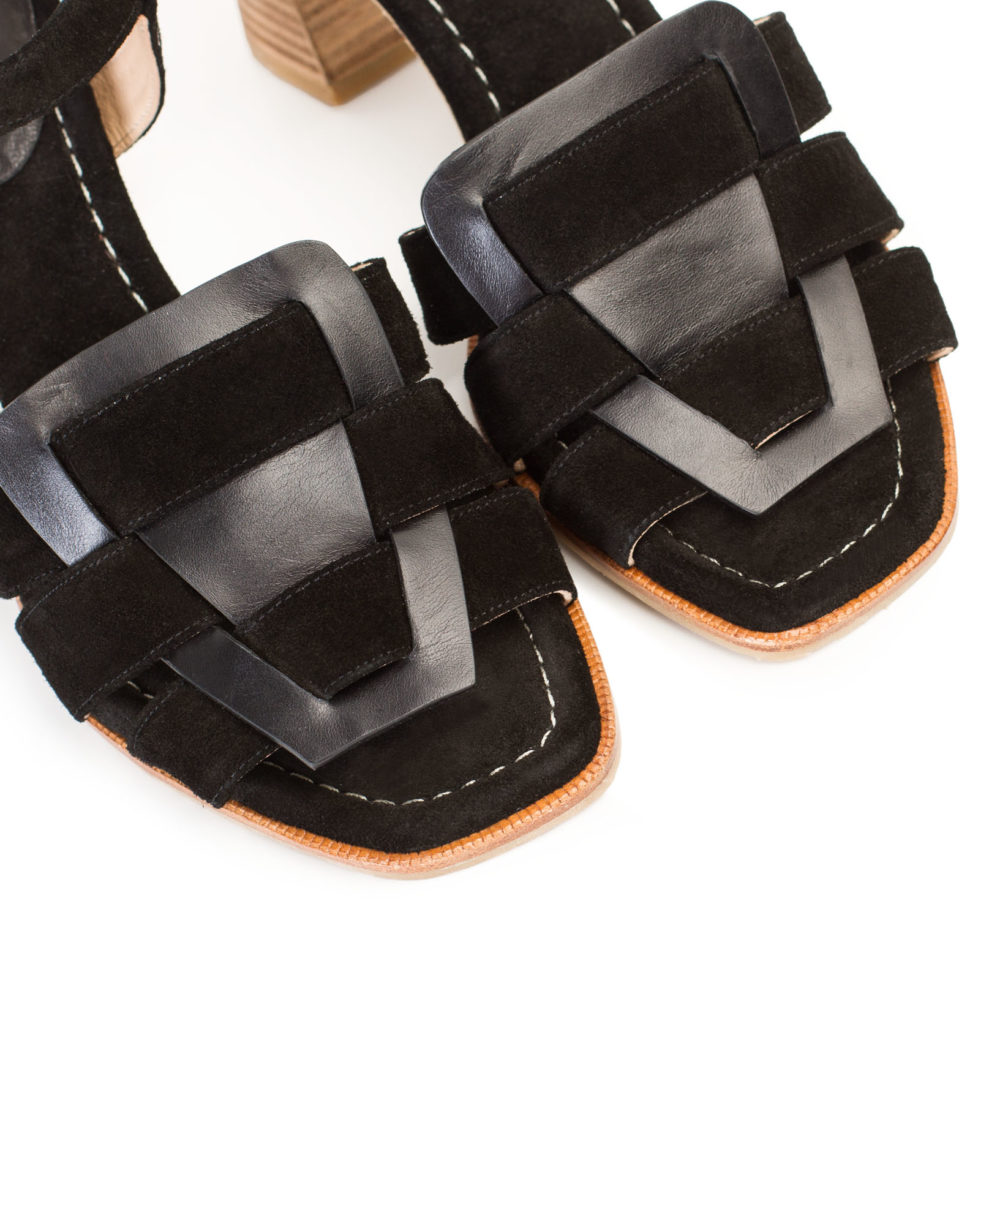 P-3931 Black Madison Velour Leather Sandals by Paco Gil  detalle